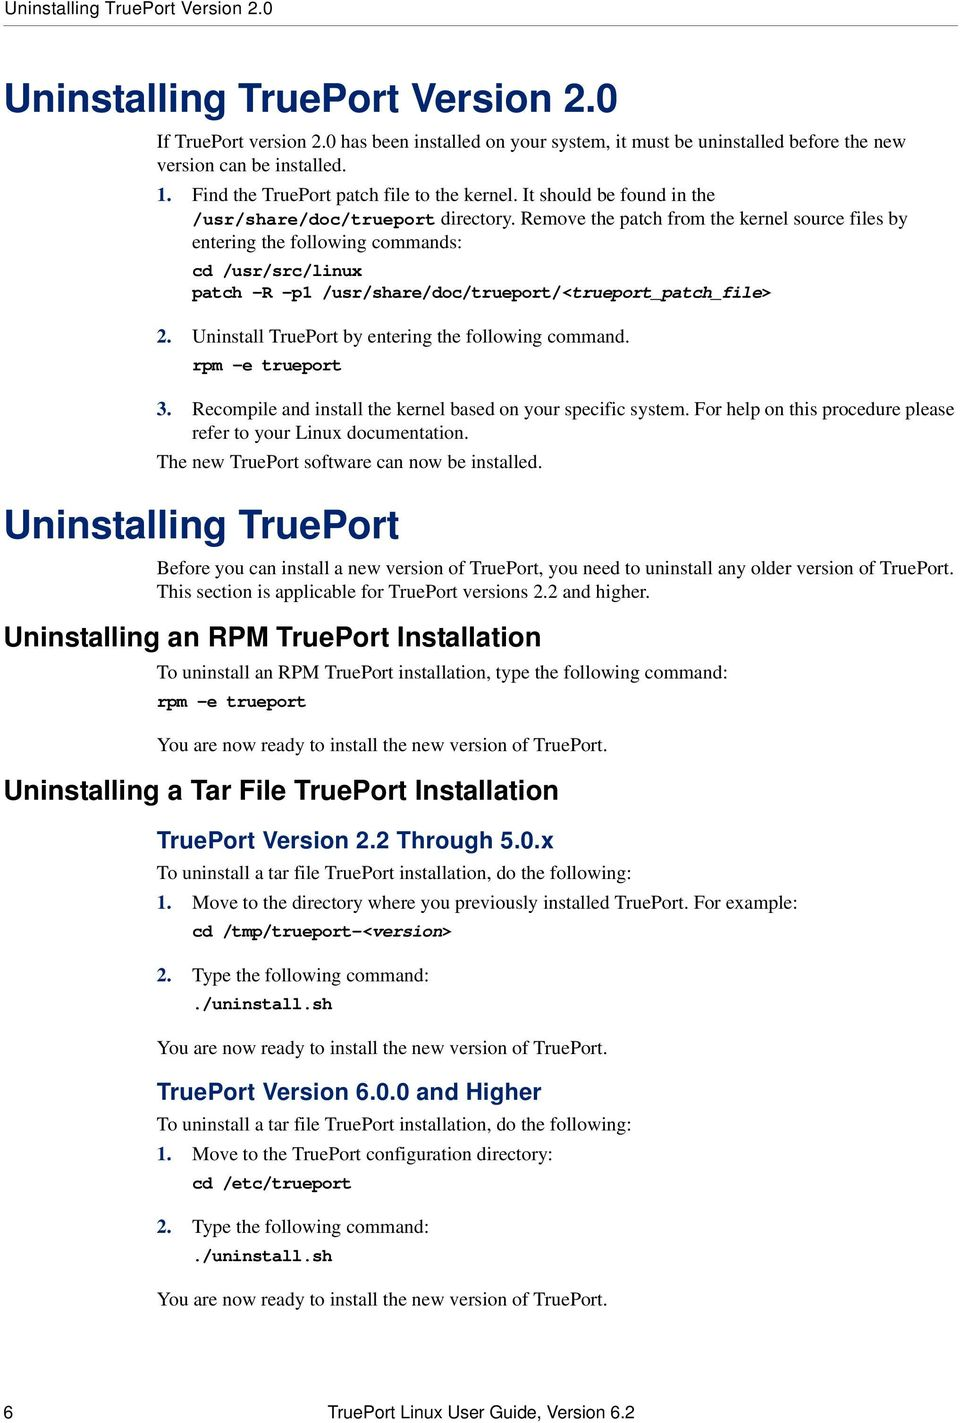 TruePort Linux User Guide Chapter - PDF